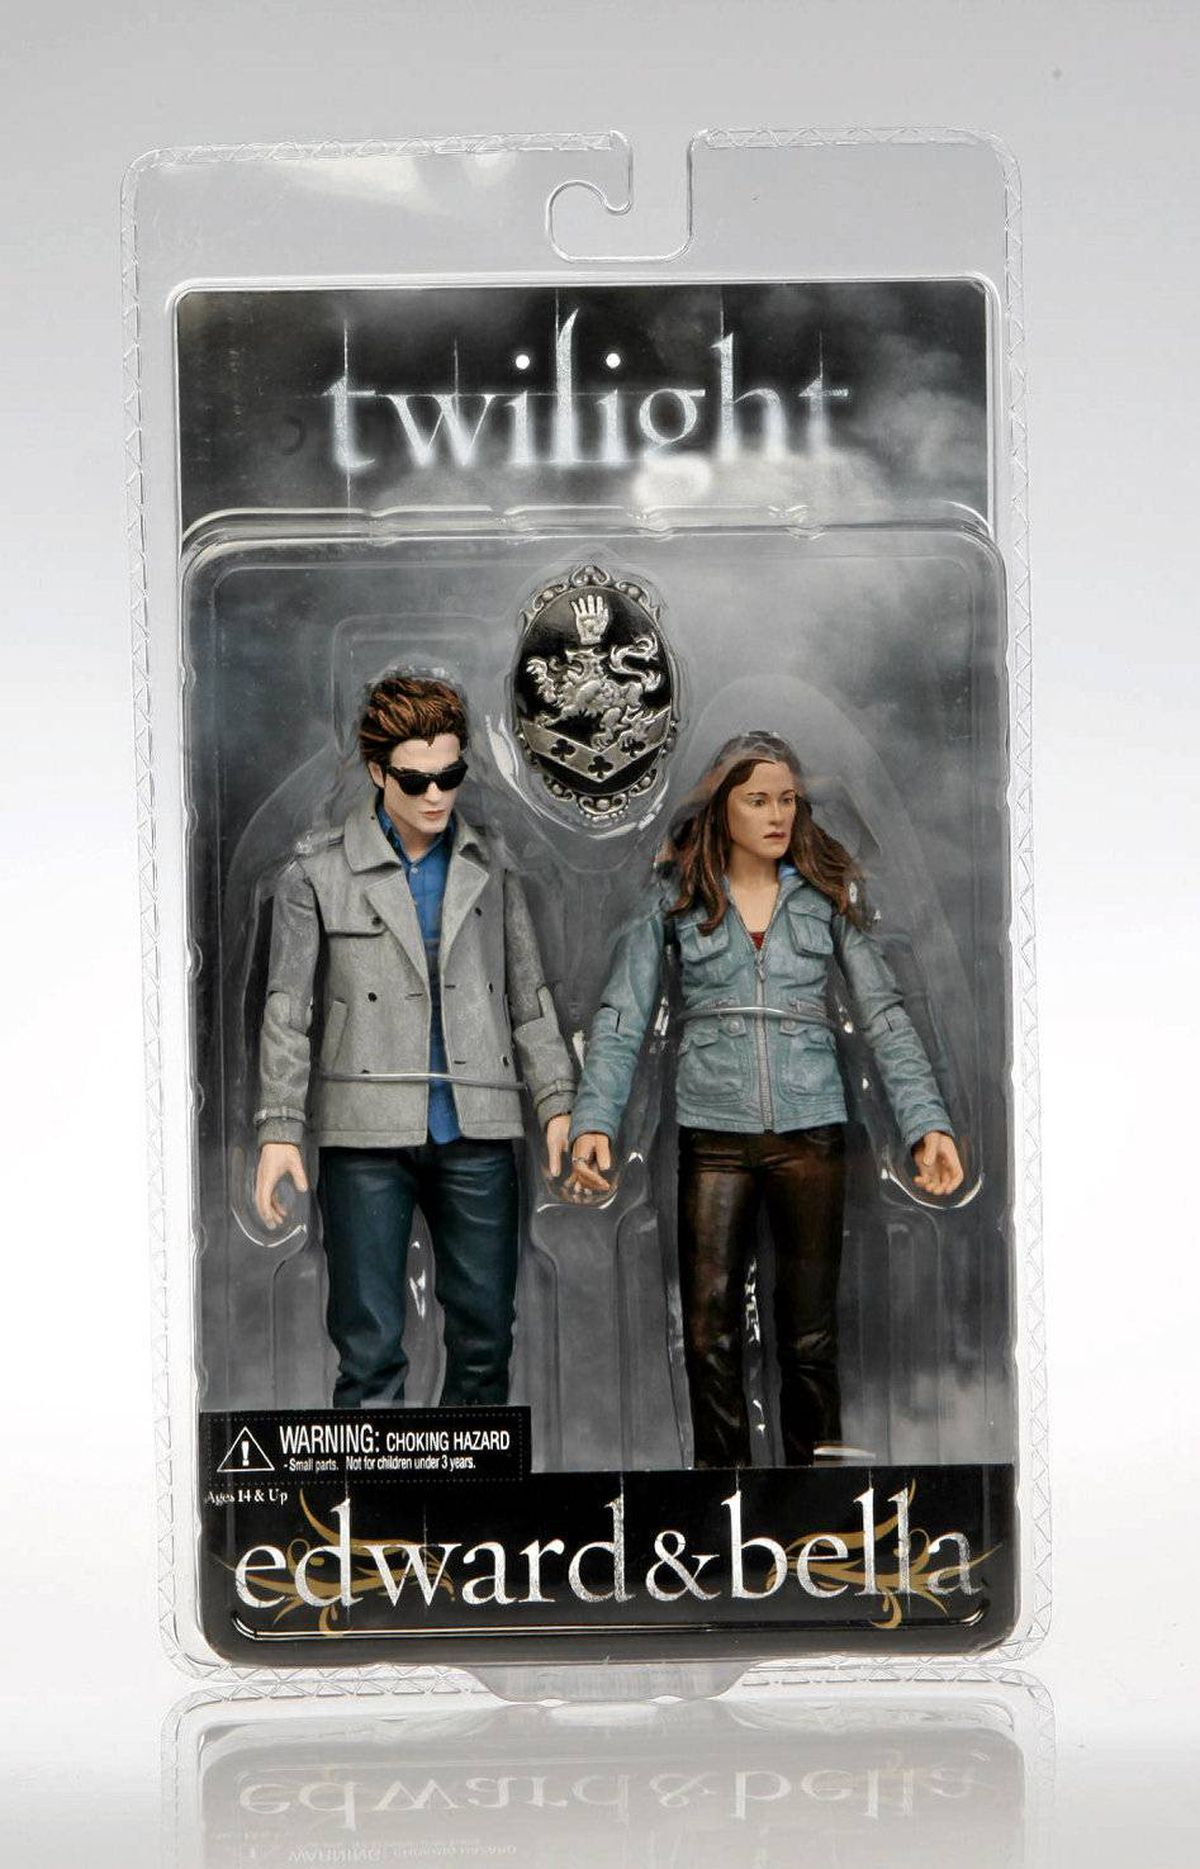 Twilight Saga Action Figures These poseable seven-inch plastic figures based on the movie characters from The Twilight Saga teen vampire series should provide endless hours of do-it-yourself drama for all incurable romantics. Werewolf Jacob comes in both shirtless and dressed versions. $17.95 to $19.95, Silver Snail Comics. www.silversnail.com